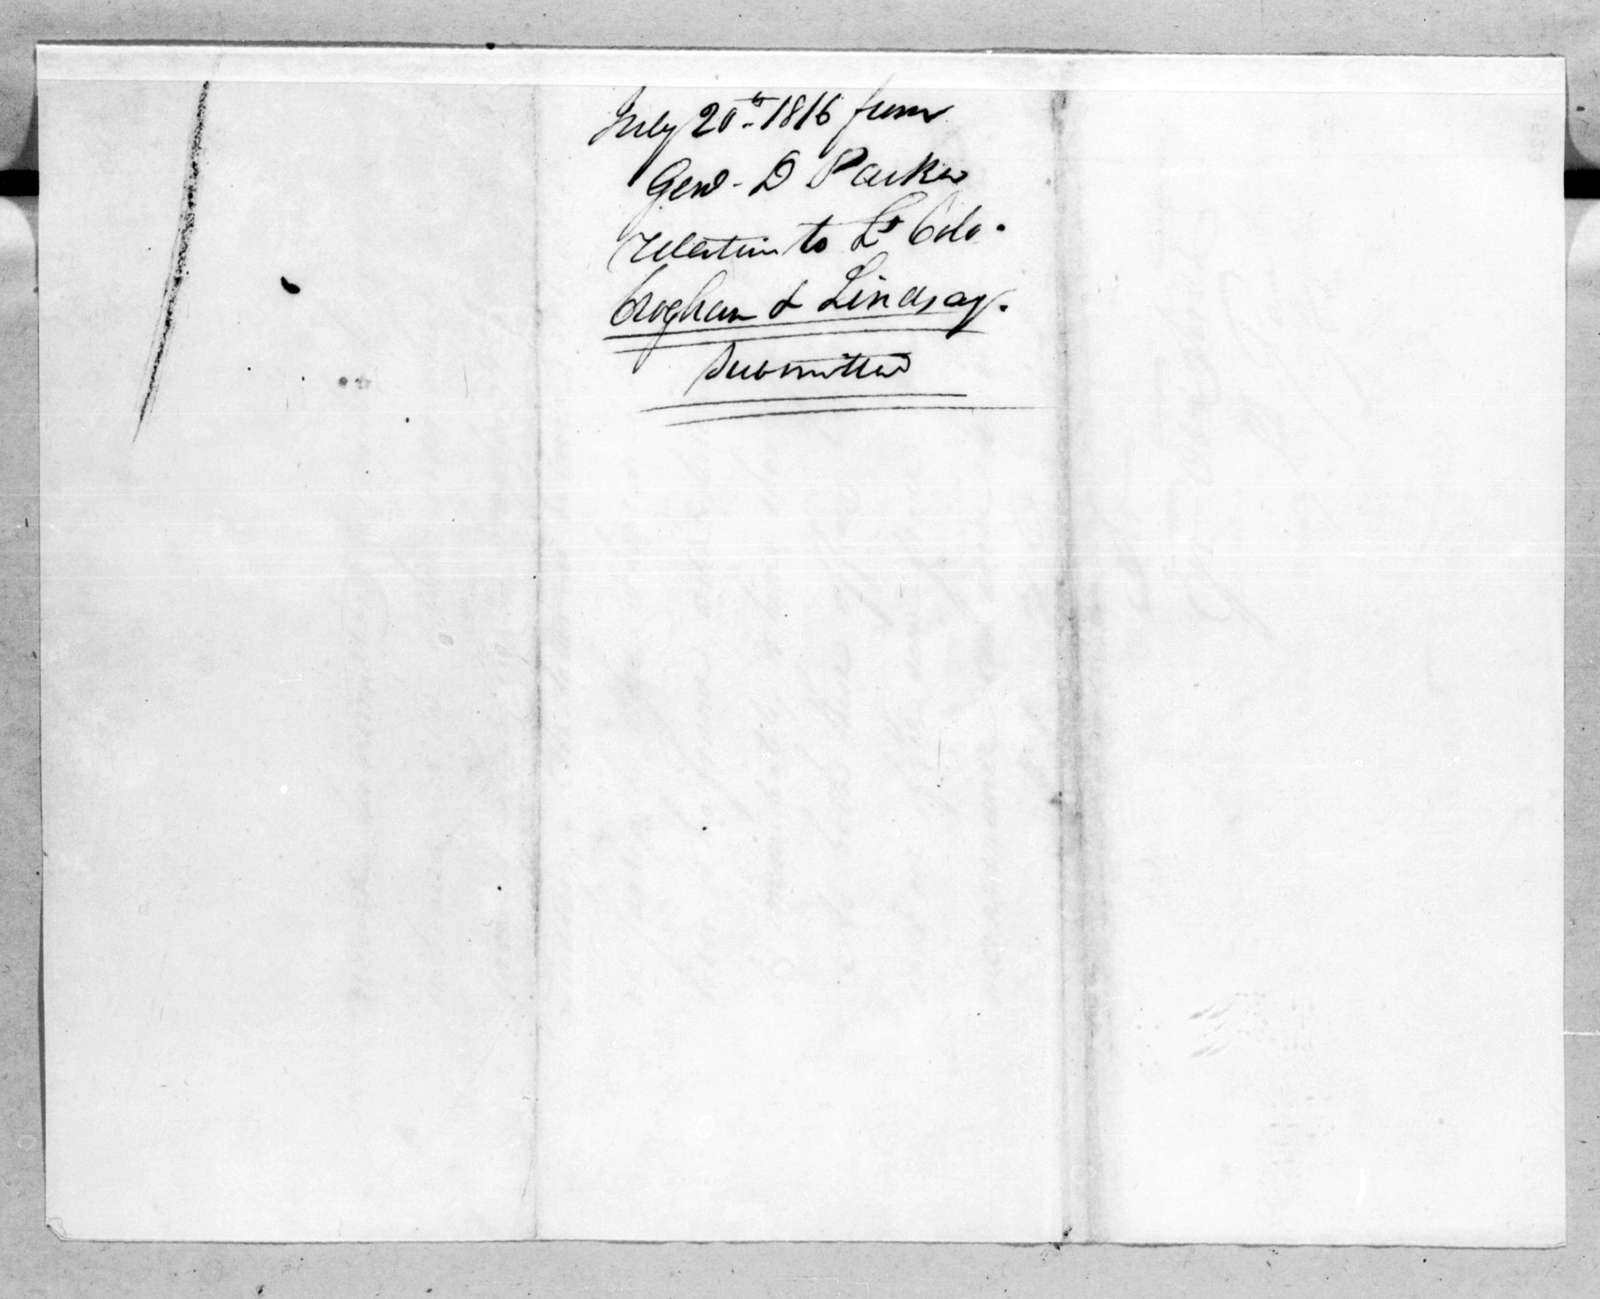 Daniel Parker to George Croghan and William Lindsay, July 20, 1816